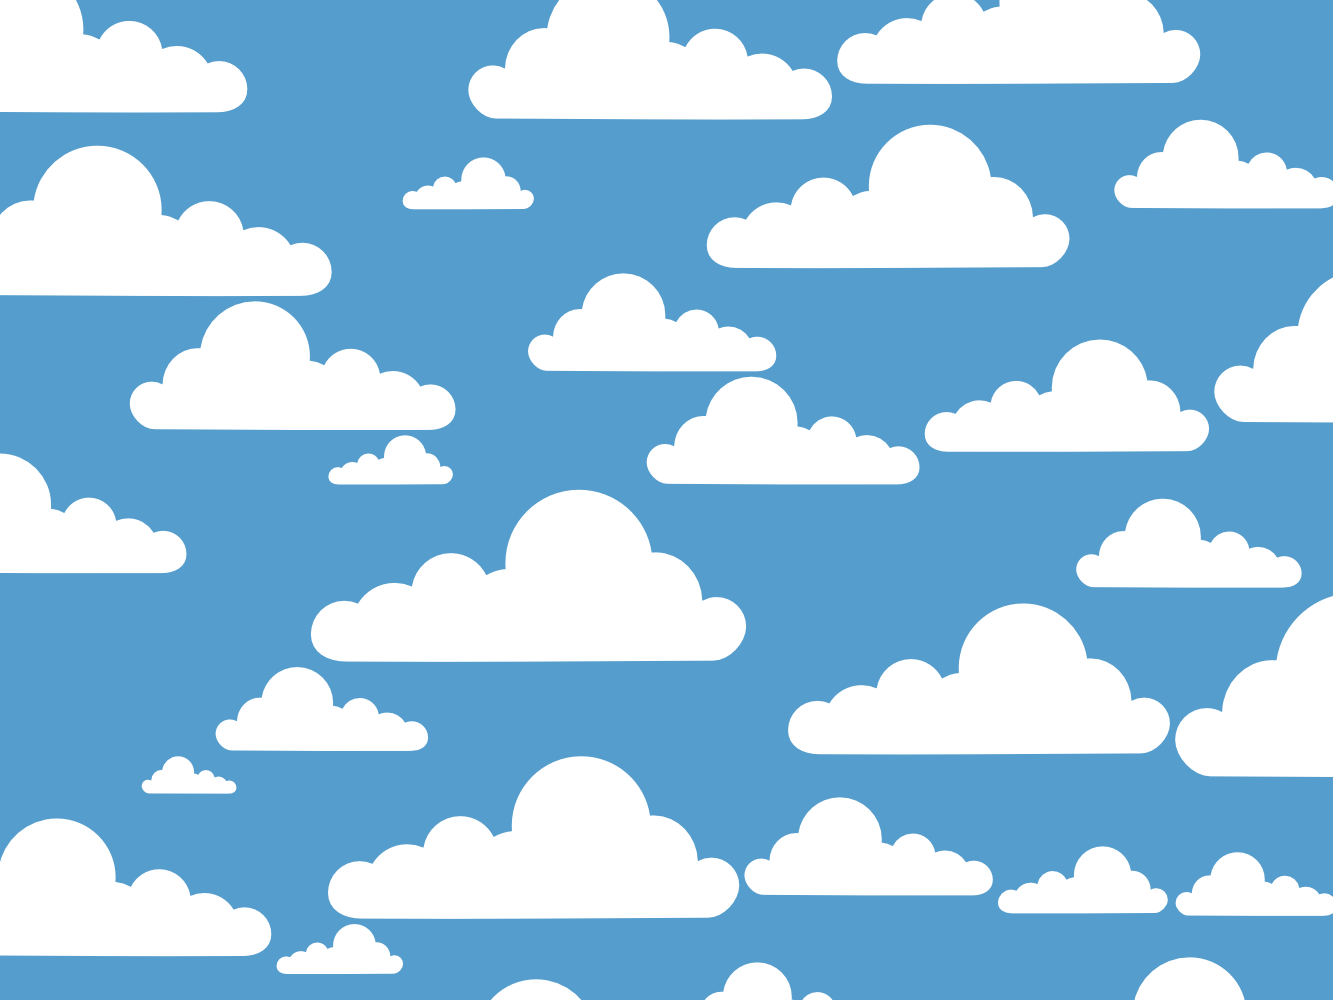 Heavenly Clouds Clipart - Clipart Kid